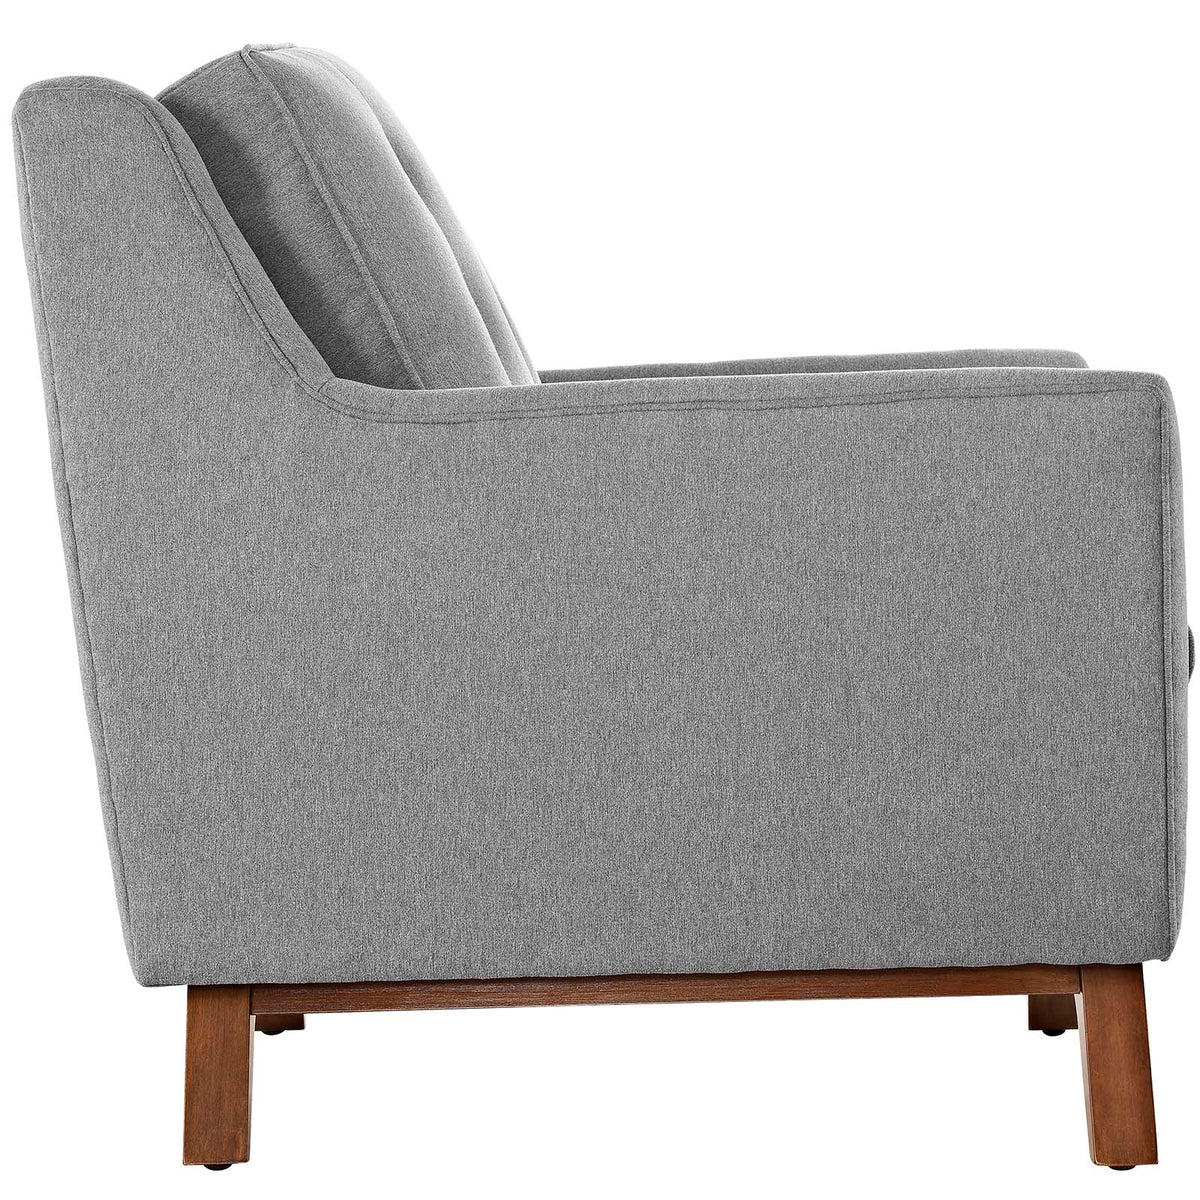 Barcelona Sofa Light Gray